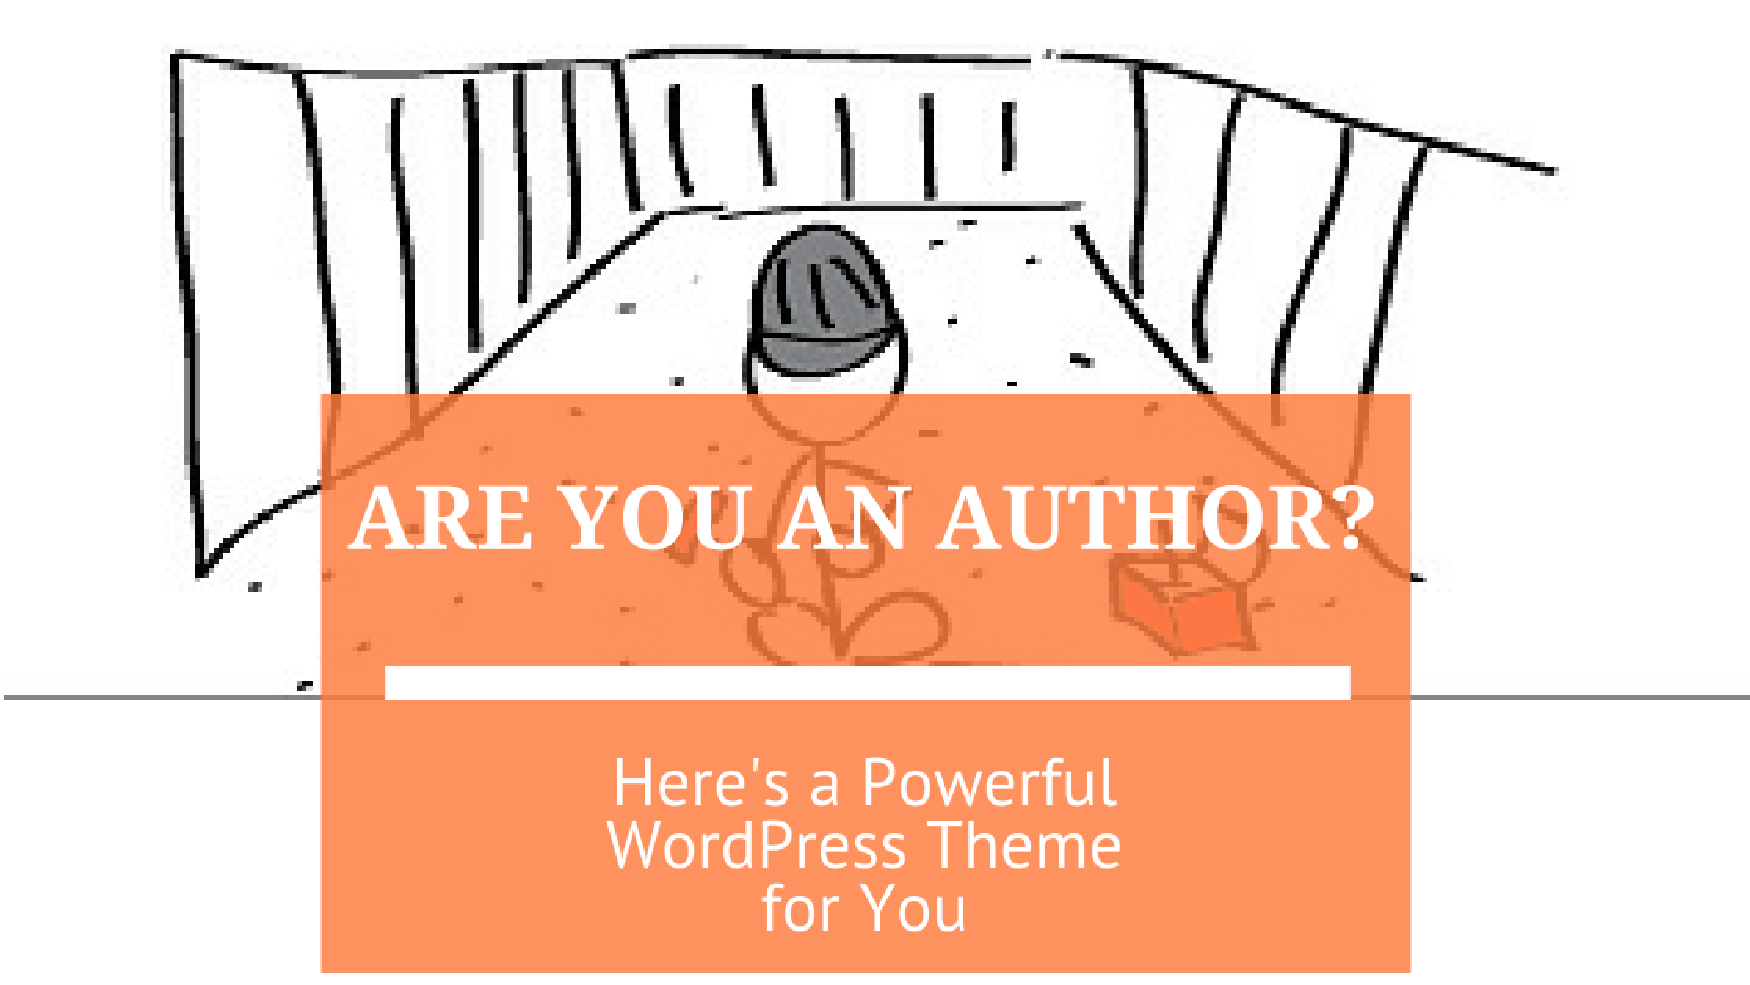 Are You an Author? Here's a Powerful WordPress Theme for You